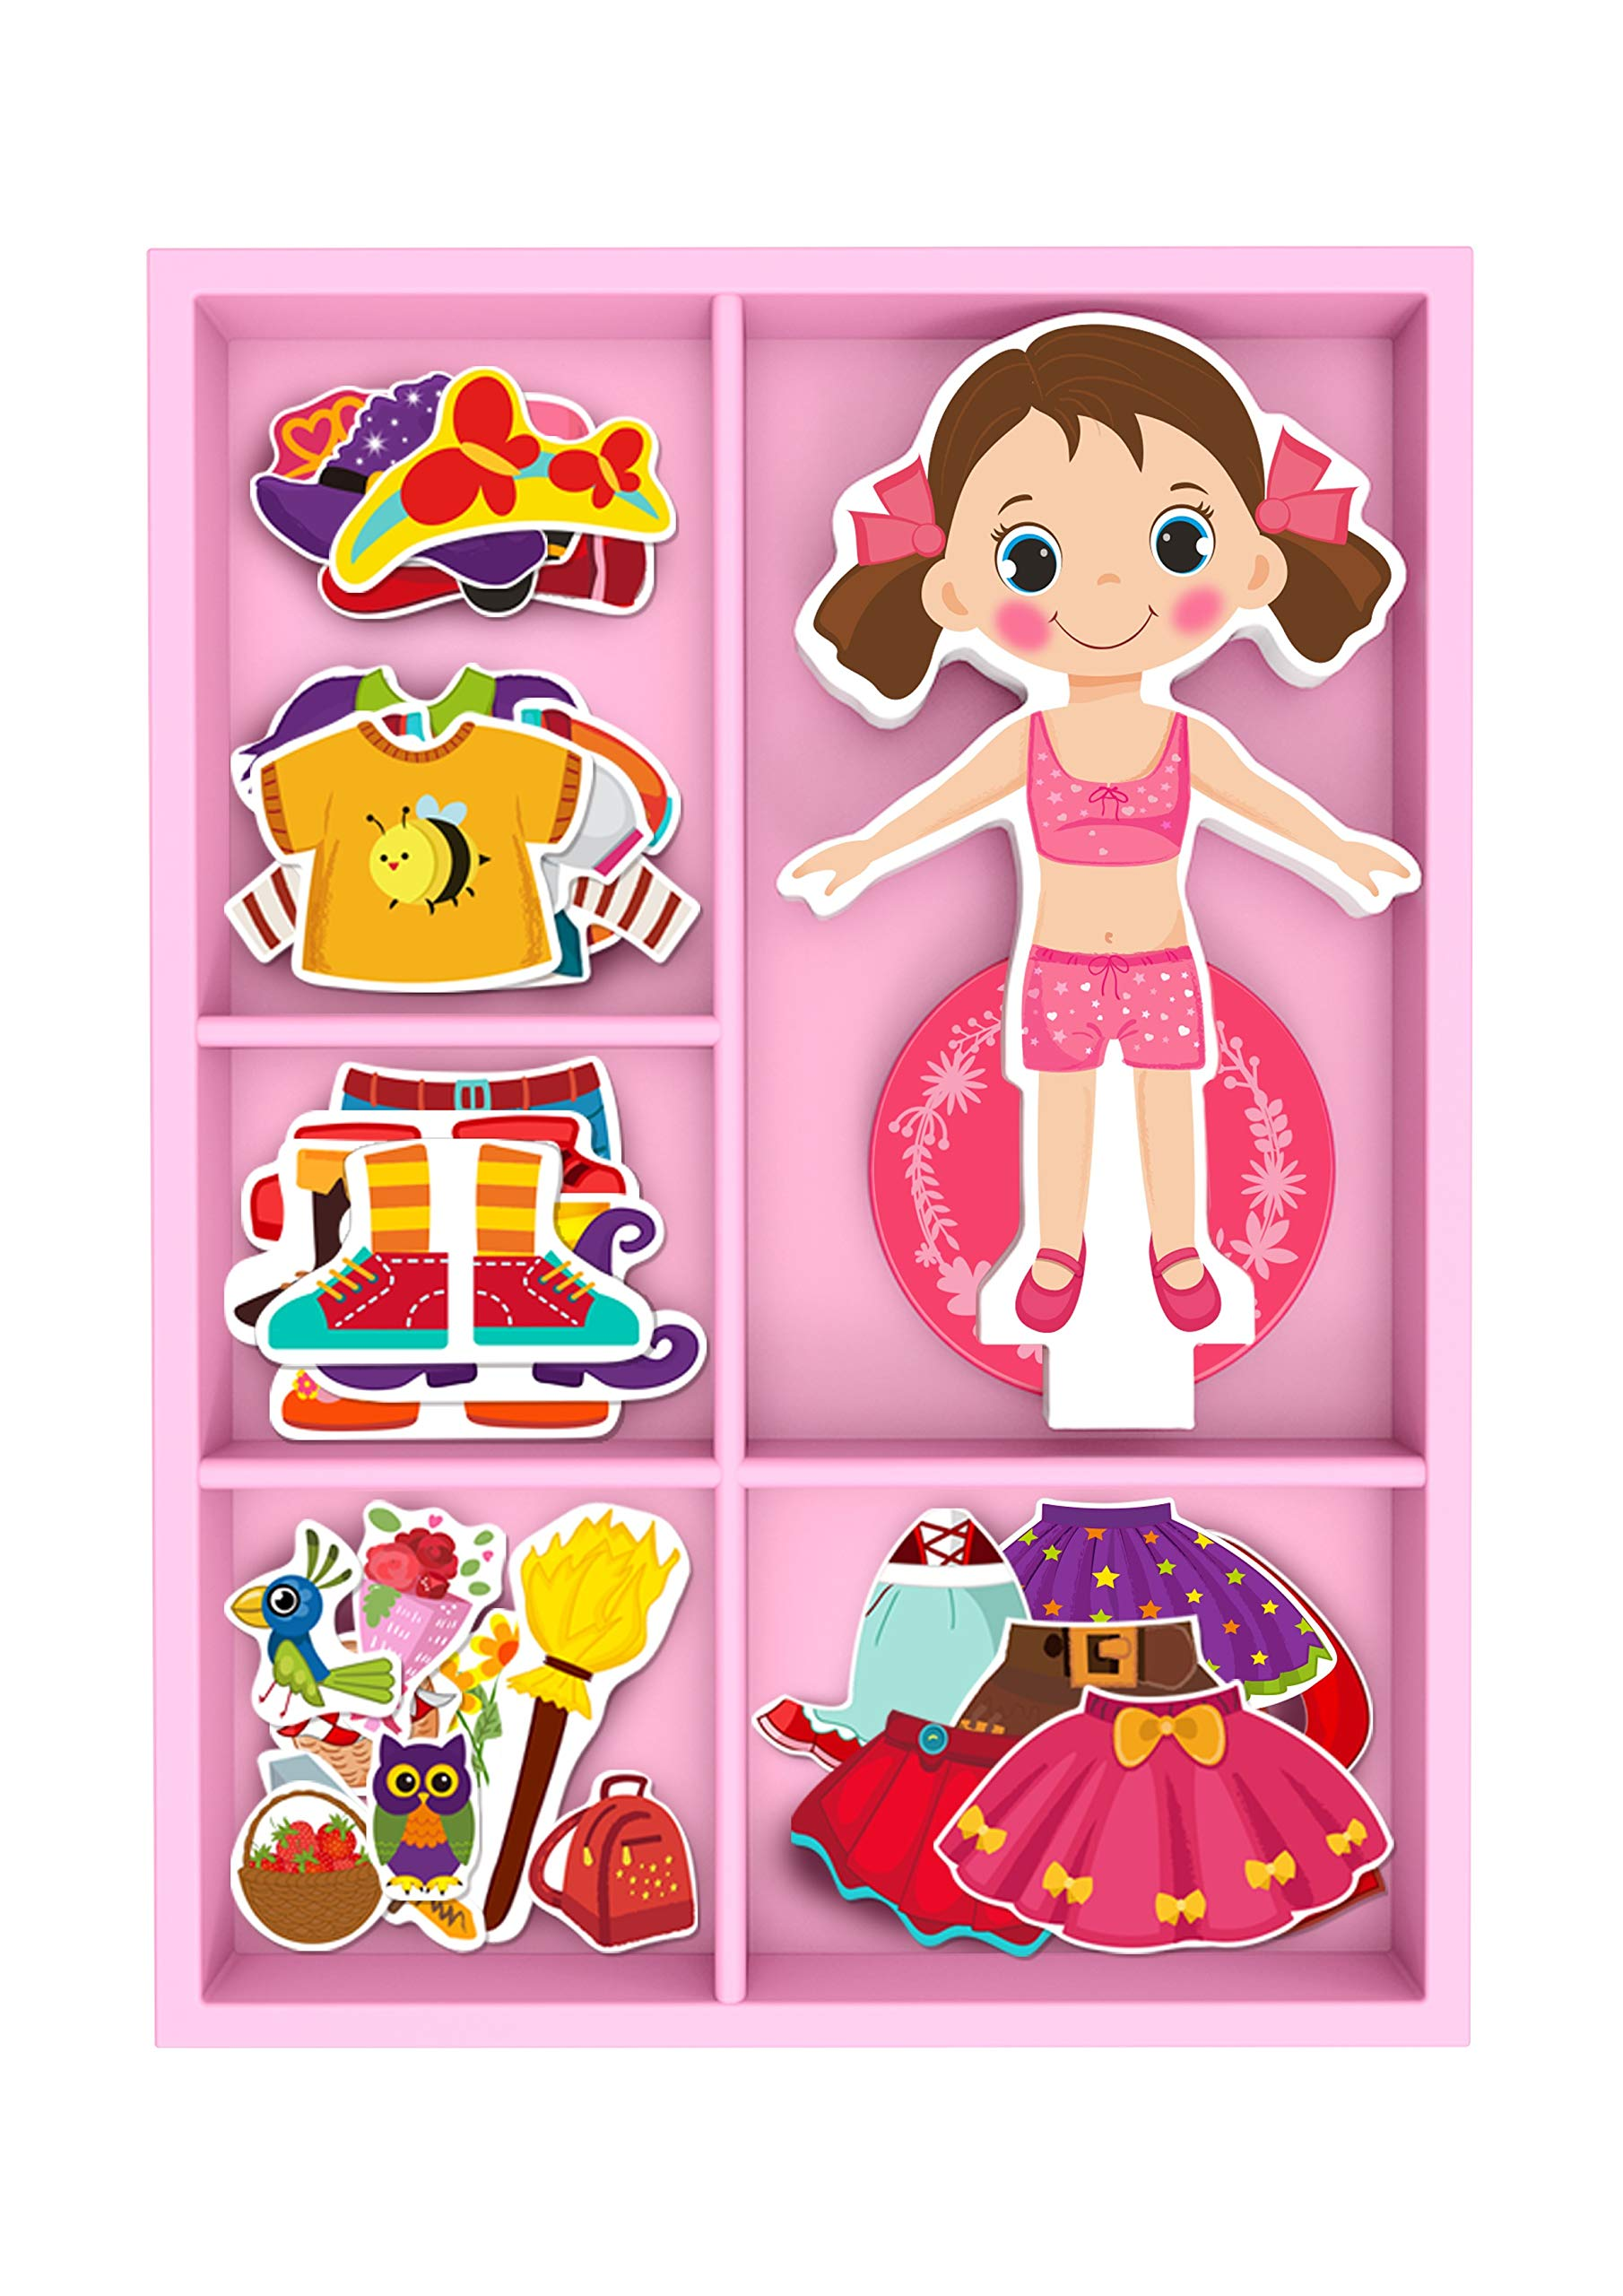 TOYSTER'S Magnetic Wooden Dress-Up Dolls Toy | Pretend Play Set Includes: 1 Wood Doll with 30 Assorted Costume Dress Ideas | Not Your Average Paper Doll | Great Gift Idea for Little Girls 3+ (PZ550)